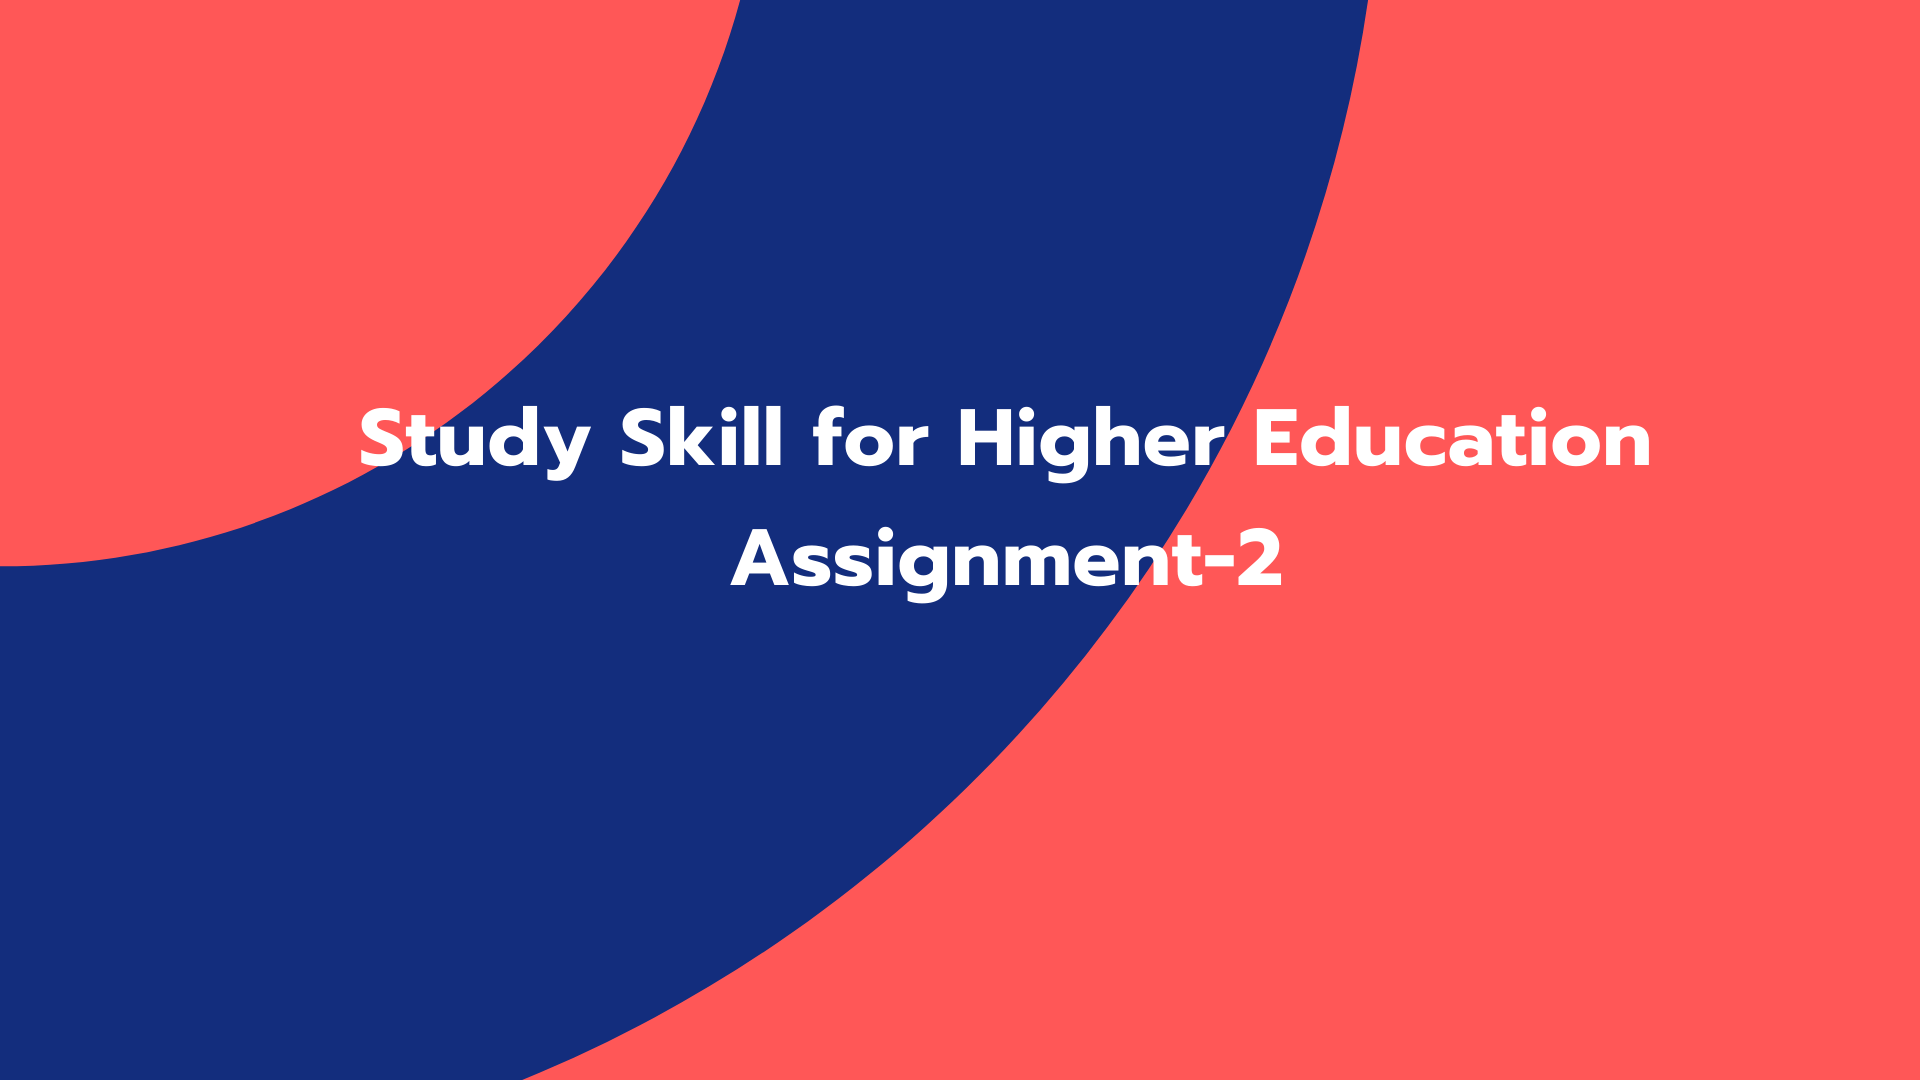 Study Skill for Higher Education Assignment-2